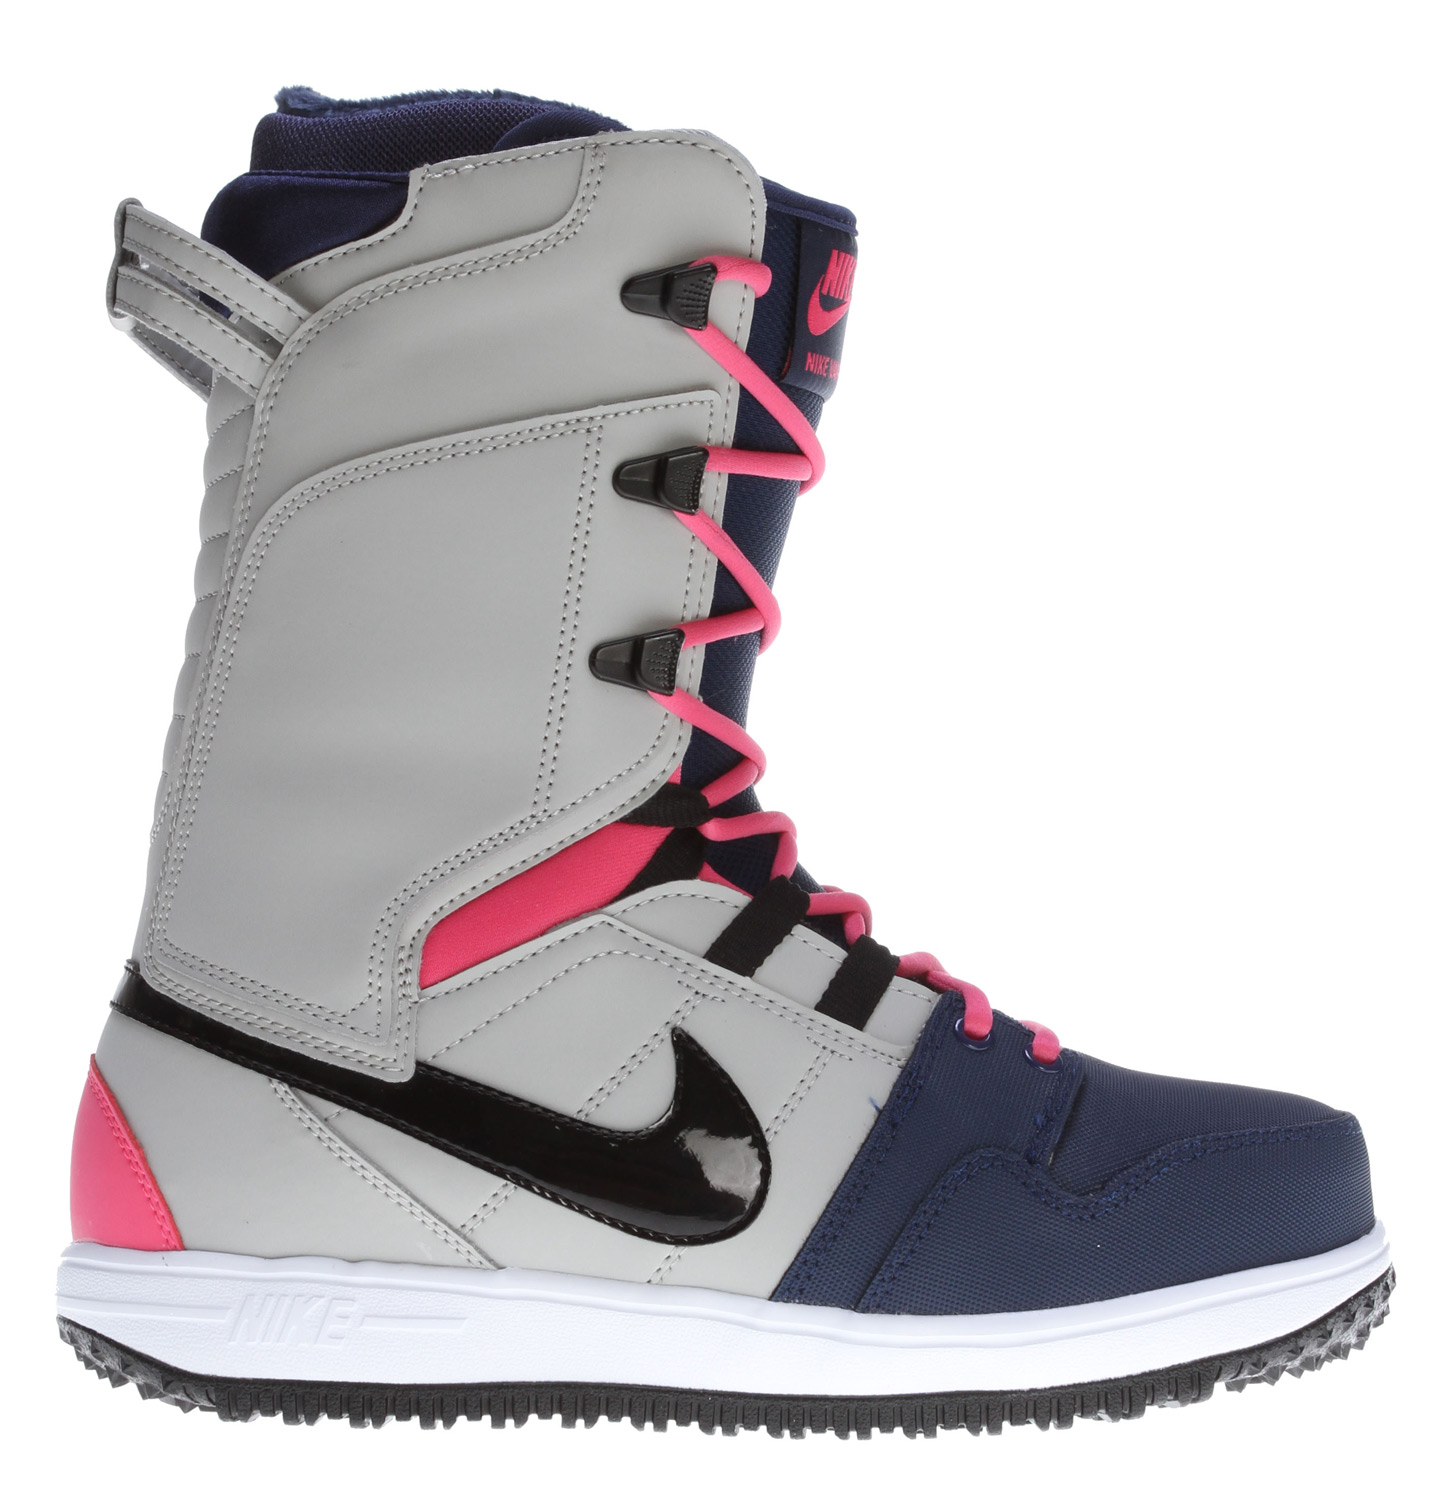 Snowboard Inspired by the Mogan Mid 2, the Nike Vapen Women's Snow Boot is made of durable, high-quality material in a supportive, cushioned fit that grips the board for enhanced control and lightweight comfort.Key features of the Nike Vapen Snowboard Boots: Synthetic leather upper with lace-up design for supportive fit and comfort Midfoot strap with reinforced lace grommets for lock-down fit Phylon midsole for lightweight cushioning Multi-traction outsole with heel and forefoot pivot points for superior grip and board control Perforations at toe for enhanced ventilation Heel tab for easy on and off Rubber outsole for durability - $210.00